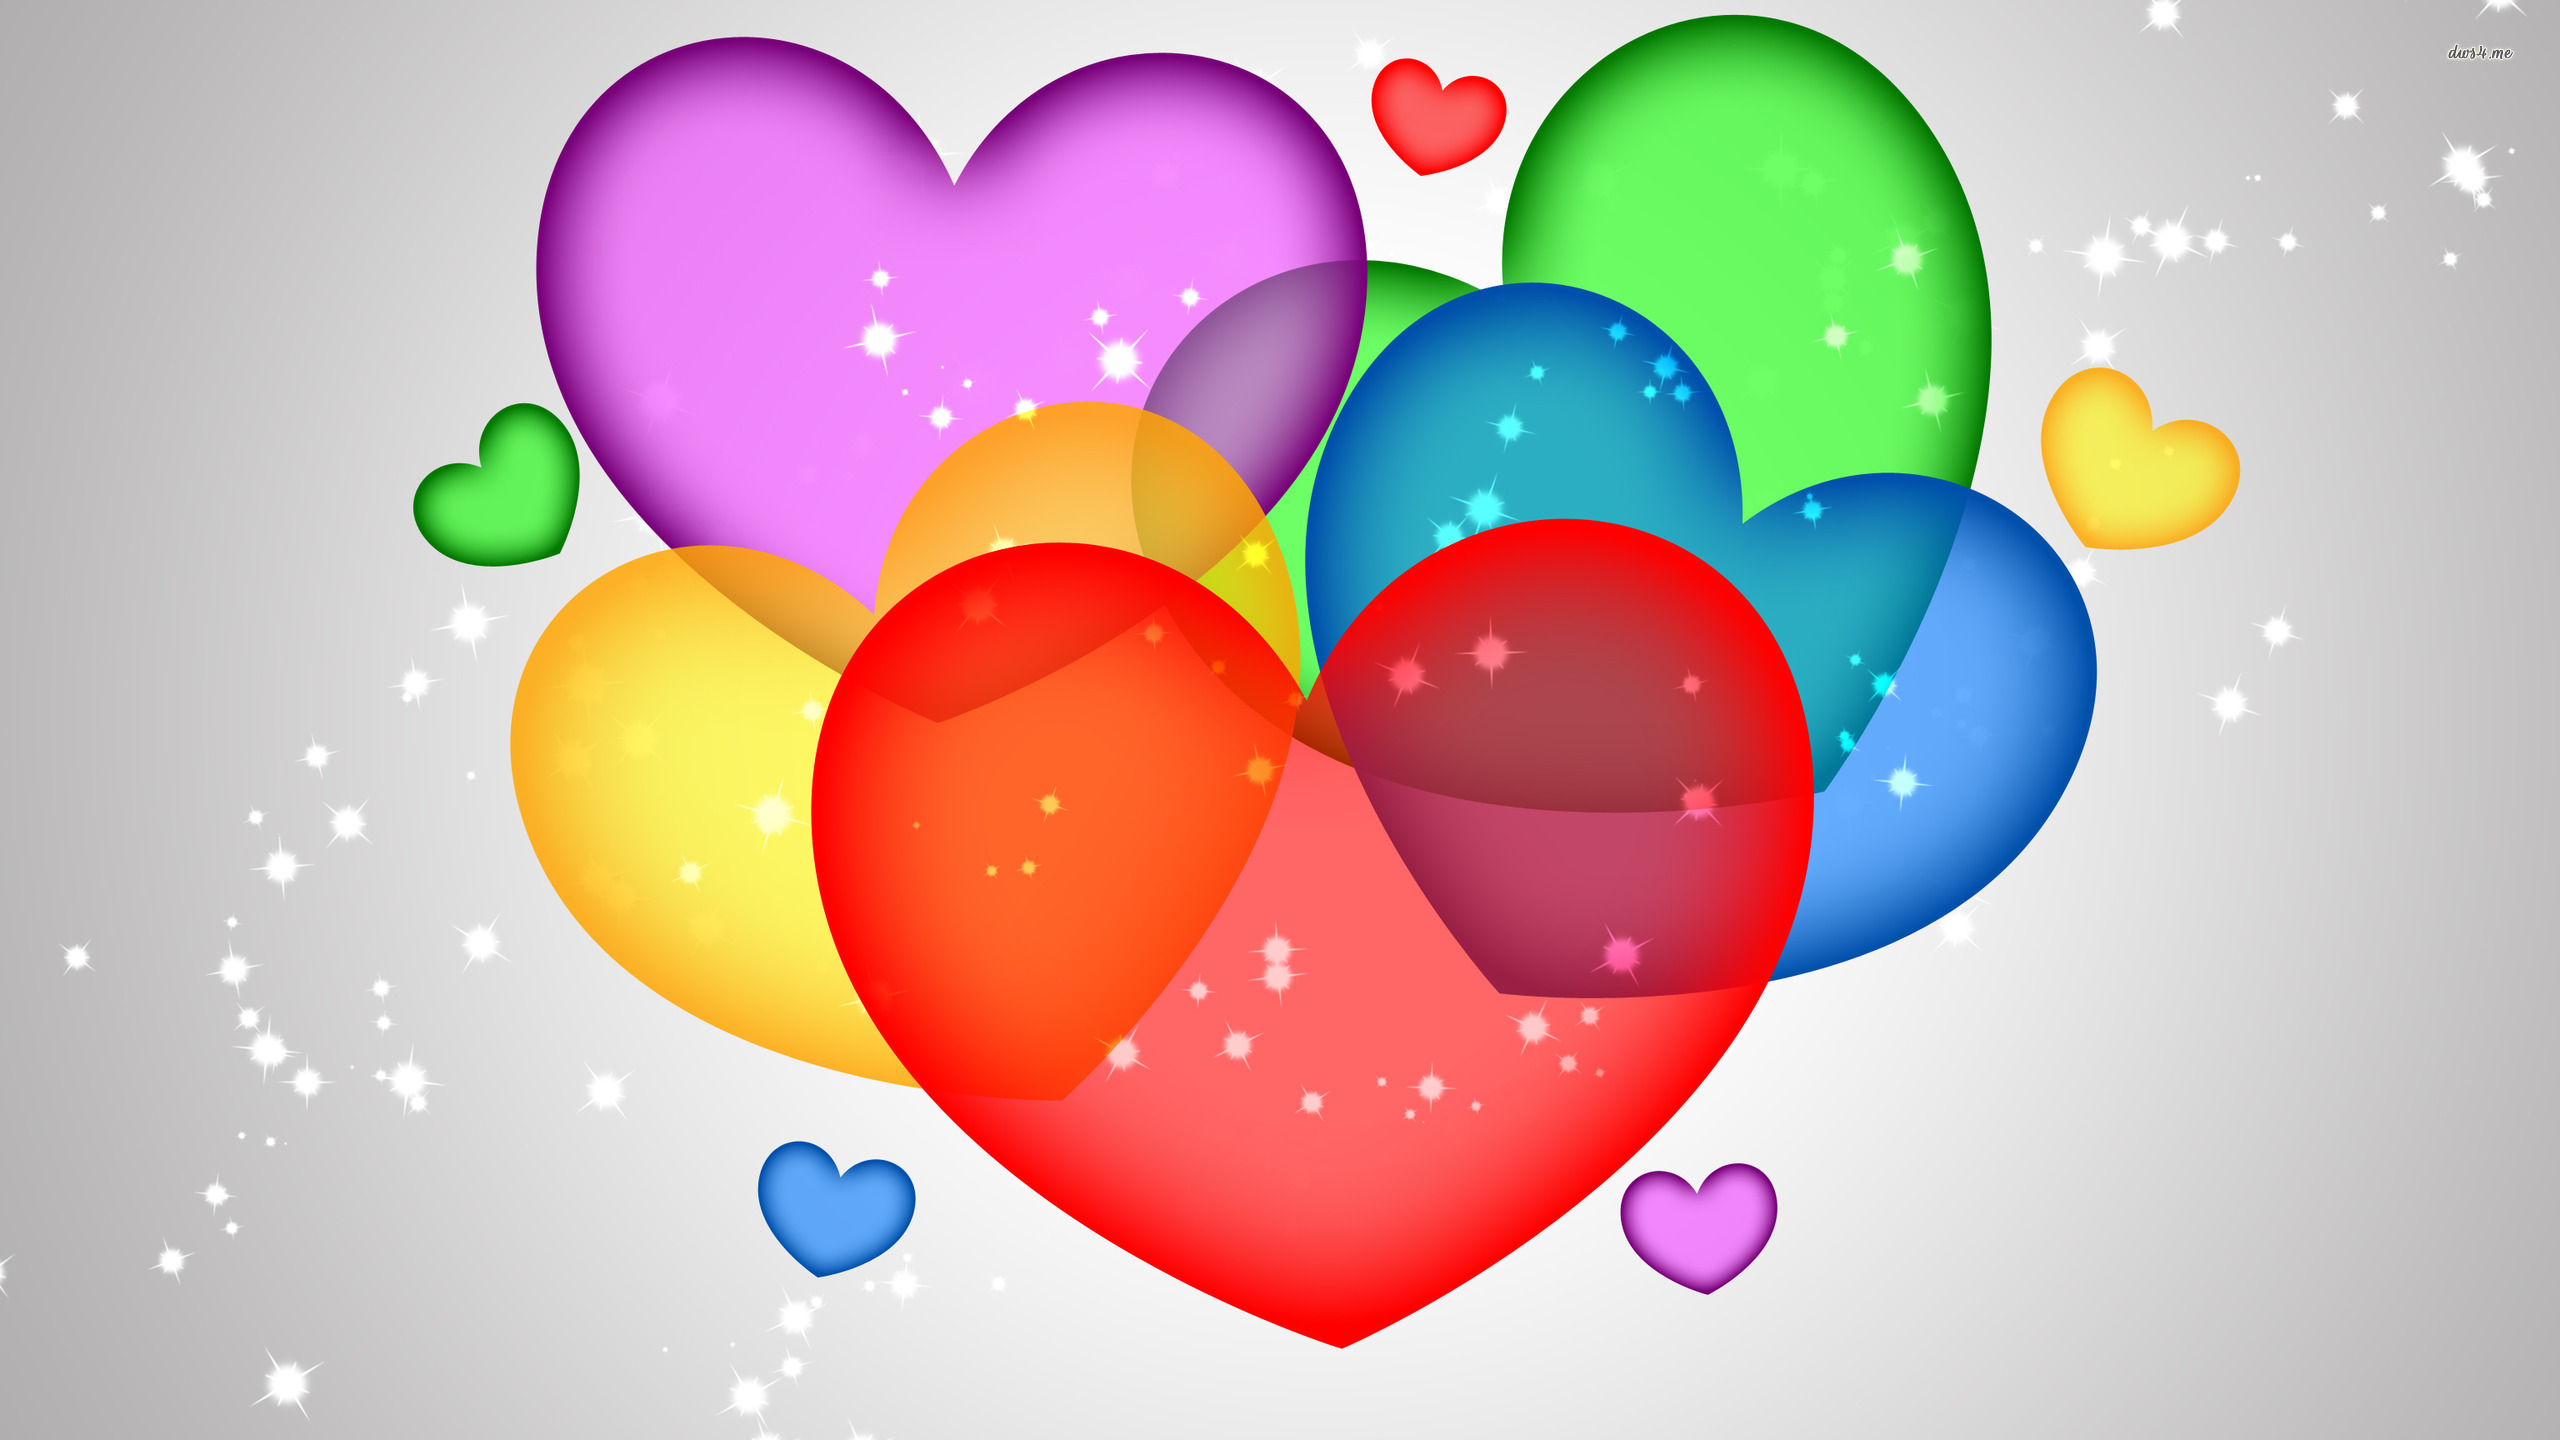 Love Heart HD Wallpapers  Lovely Hearts Wallpapers,Images 2560x1440